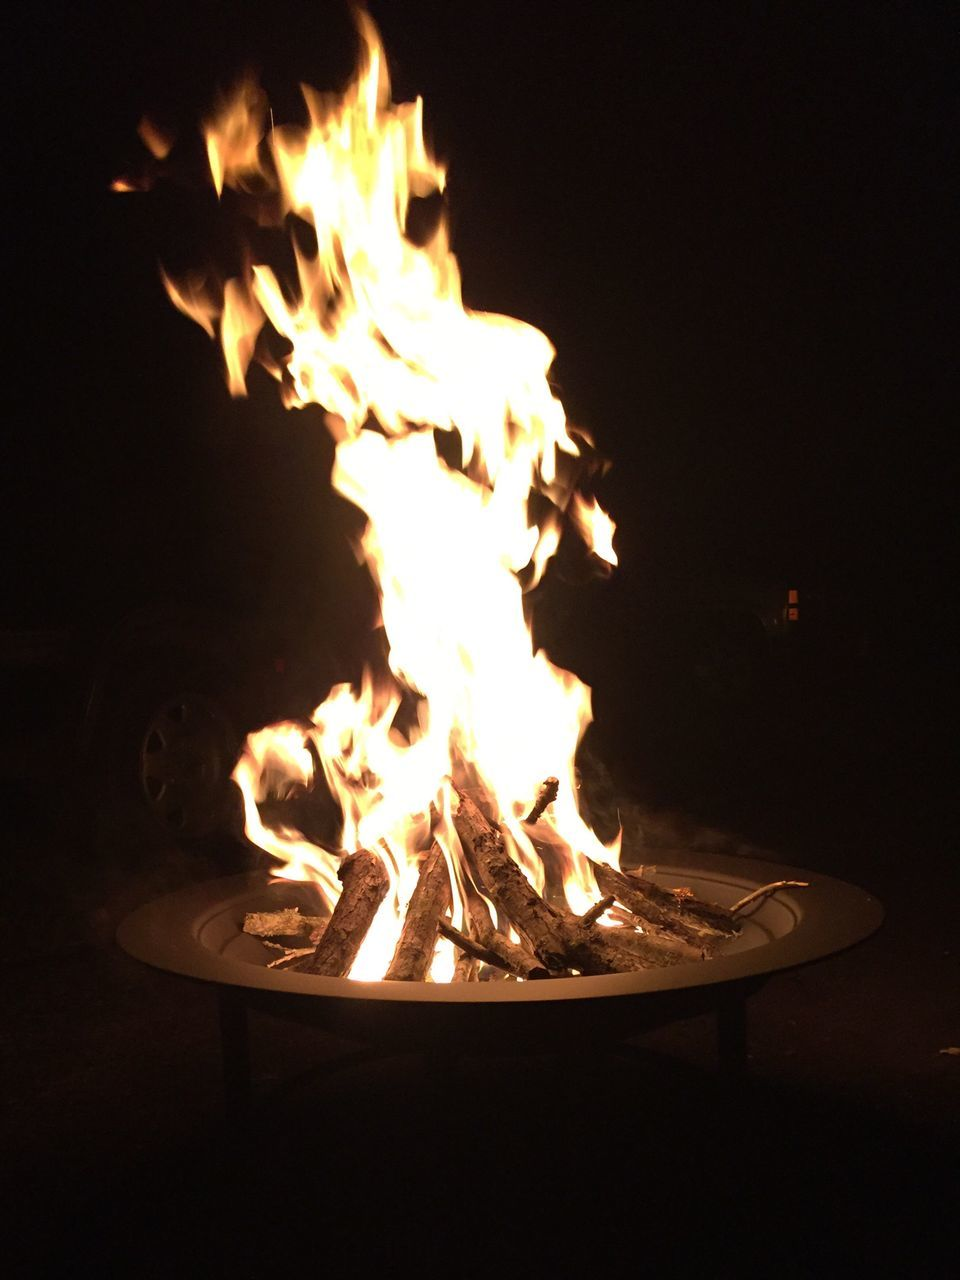 flame, burning, heat - temperature, no people, night, close-up, bonfire, fire pit, illuminated, outdoors